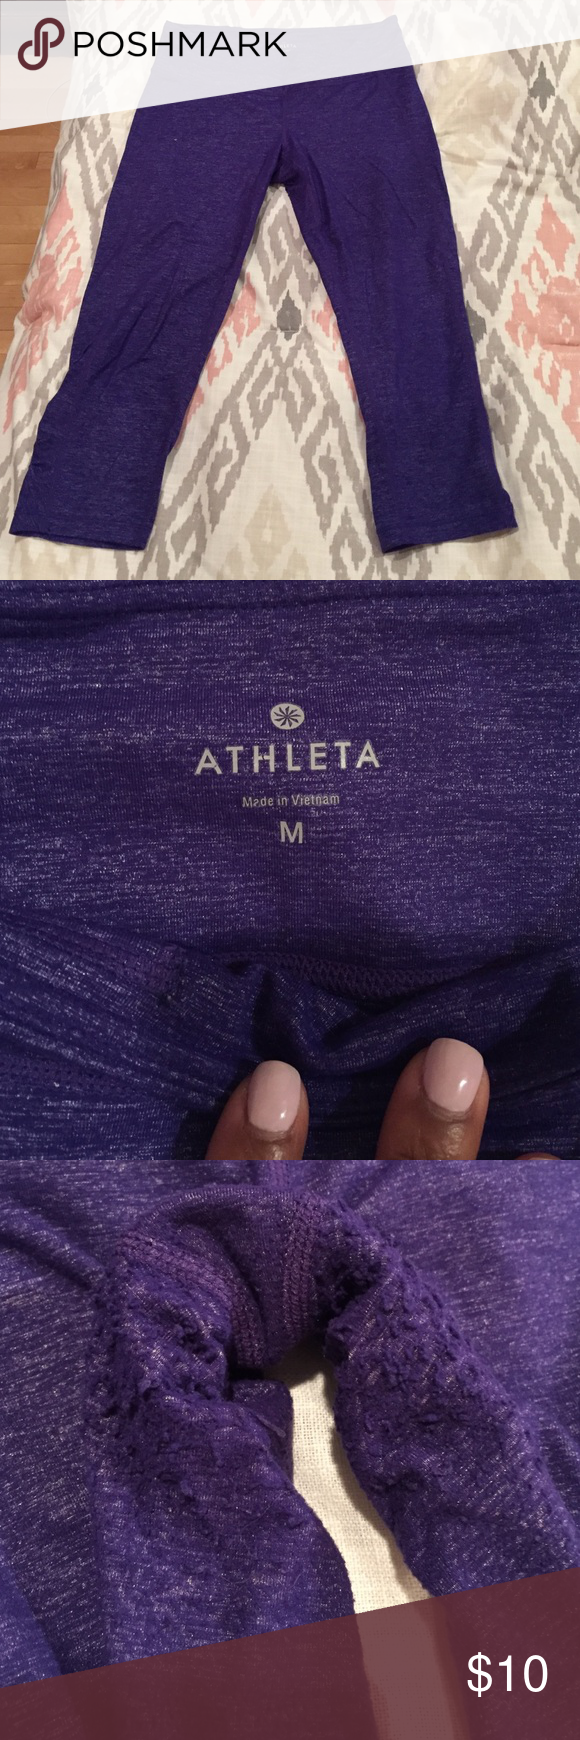 Athleta Purple Capris Pre-loved❤ Great workout pants 3rd pictures shows piling   ✅Make an offer 🚫no low balling 🚫no trades Athleta Pants Track Pants & Joggers